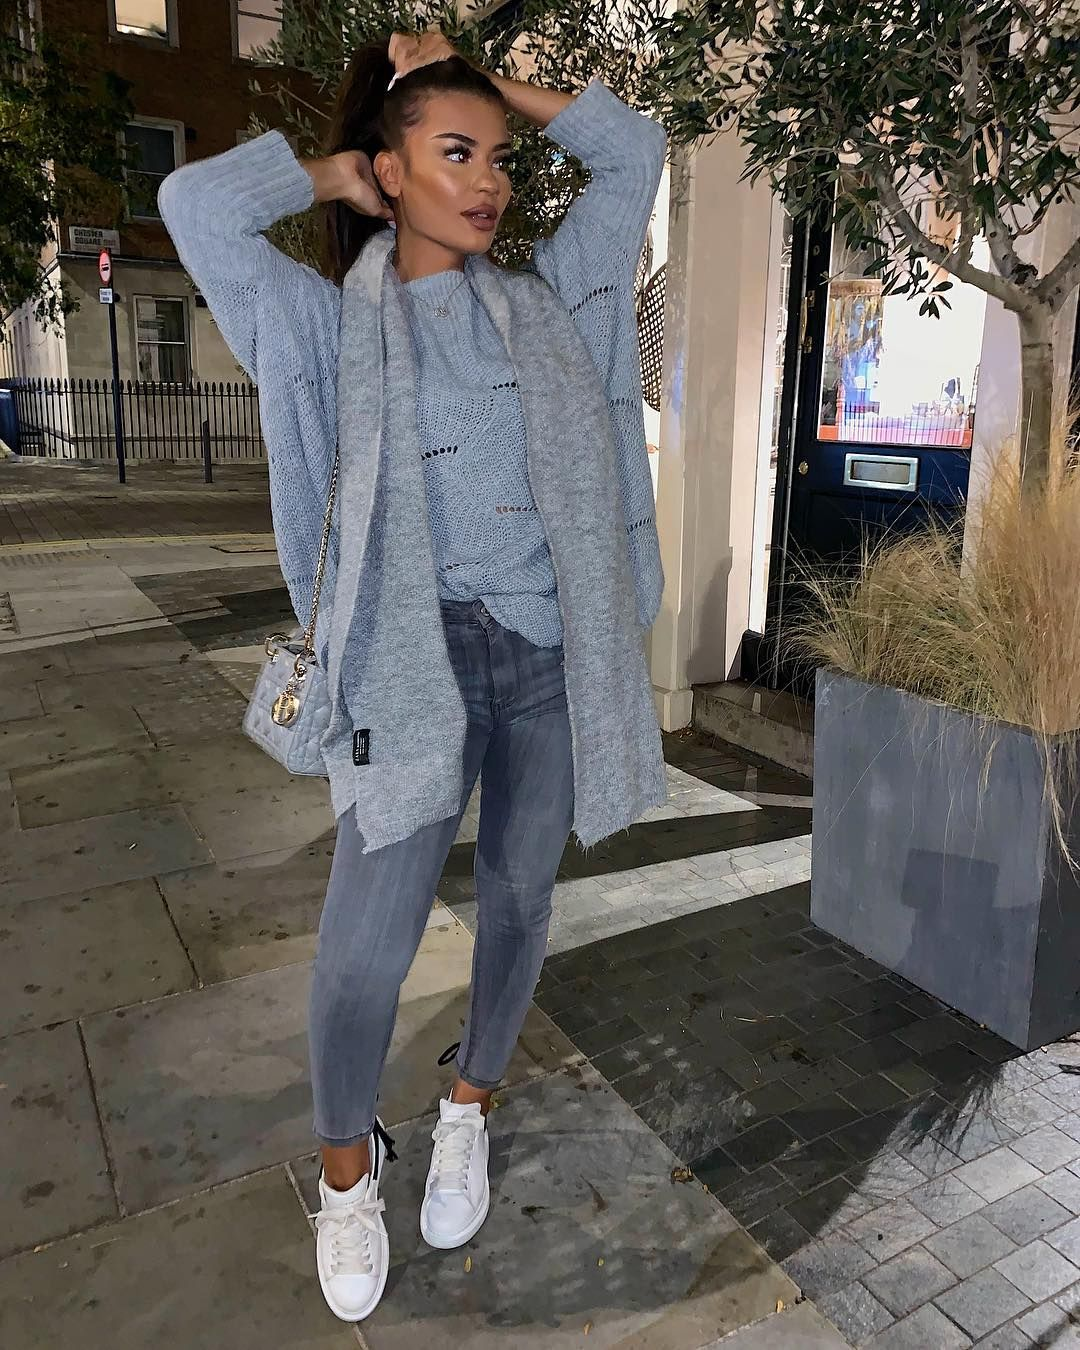 28 Top Trendy Streetwear Outfit Tips That Are usually Awesome Over